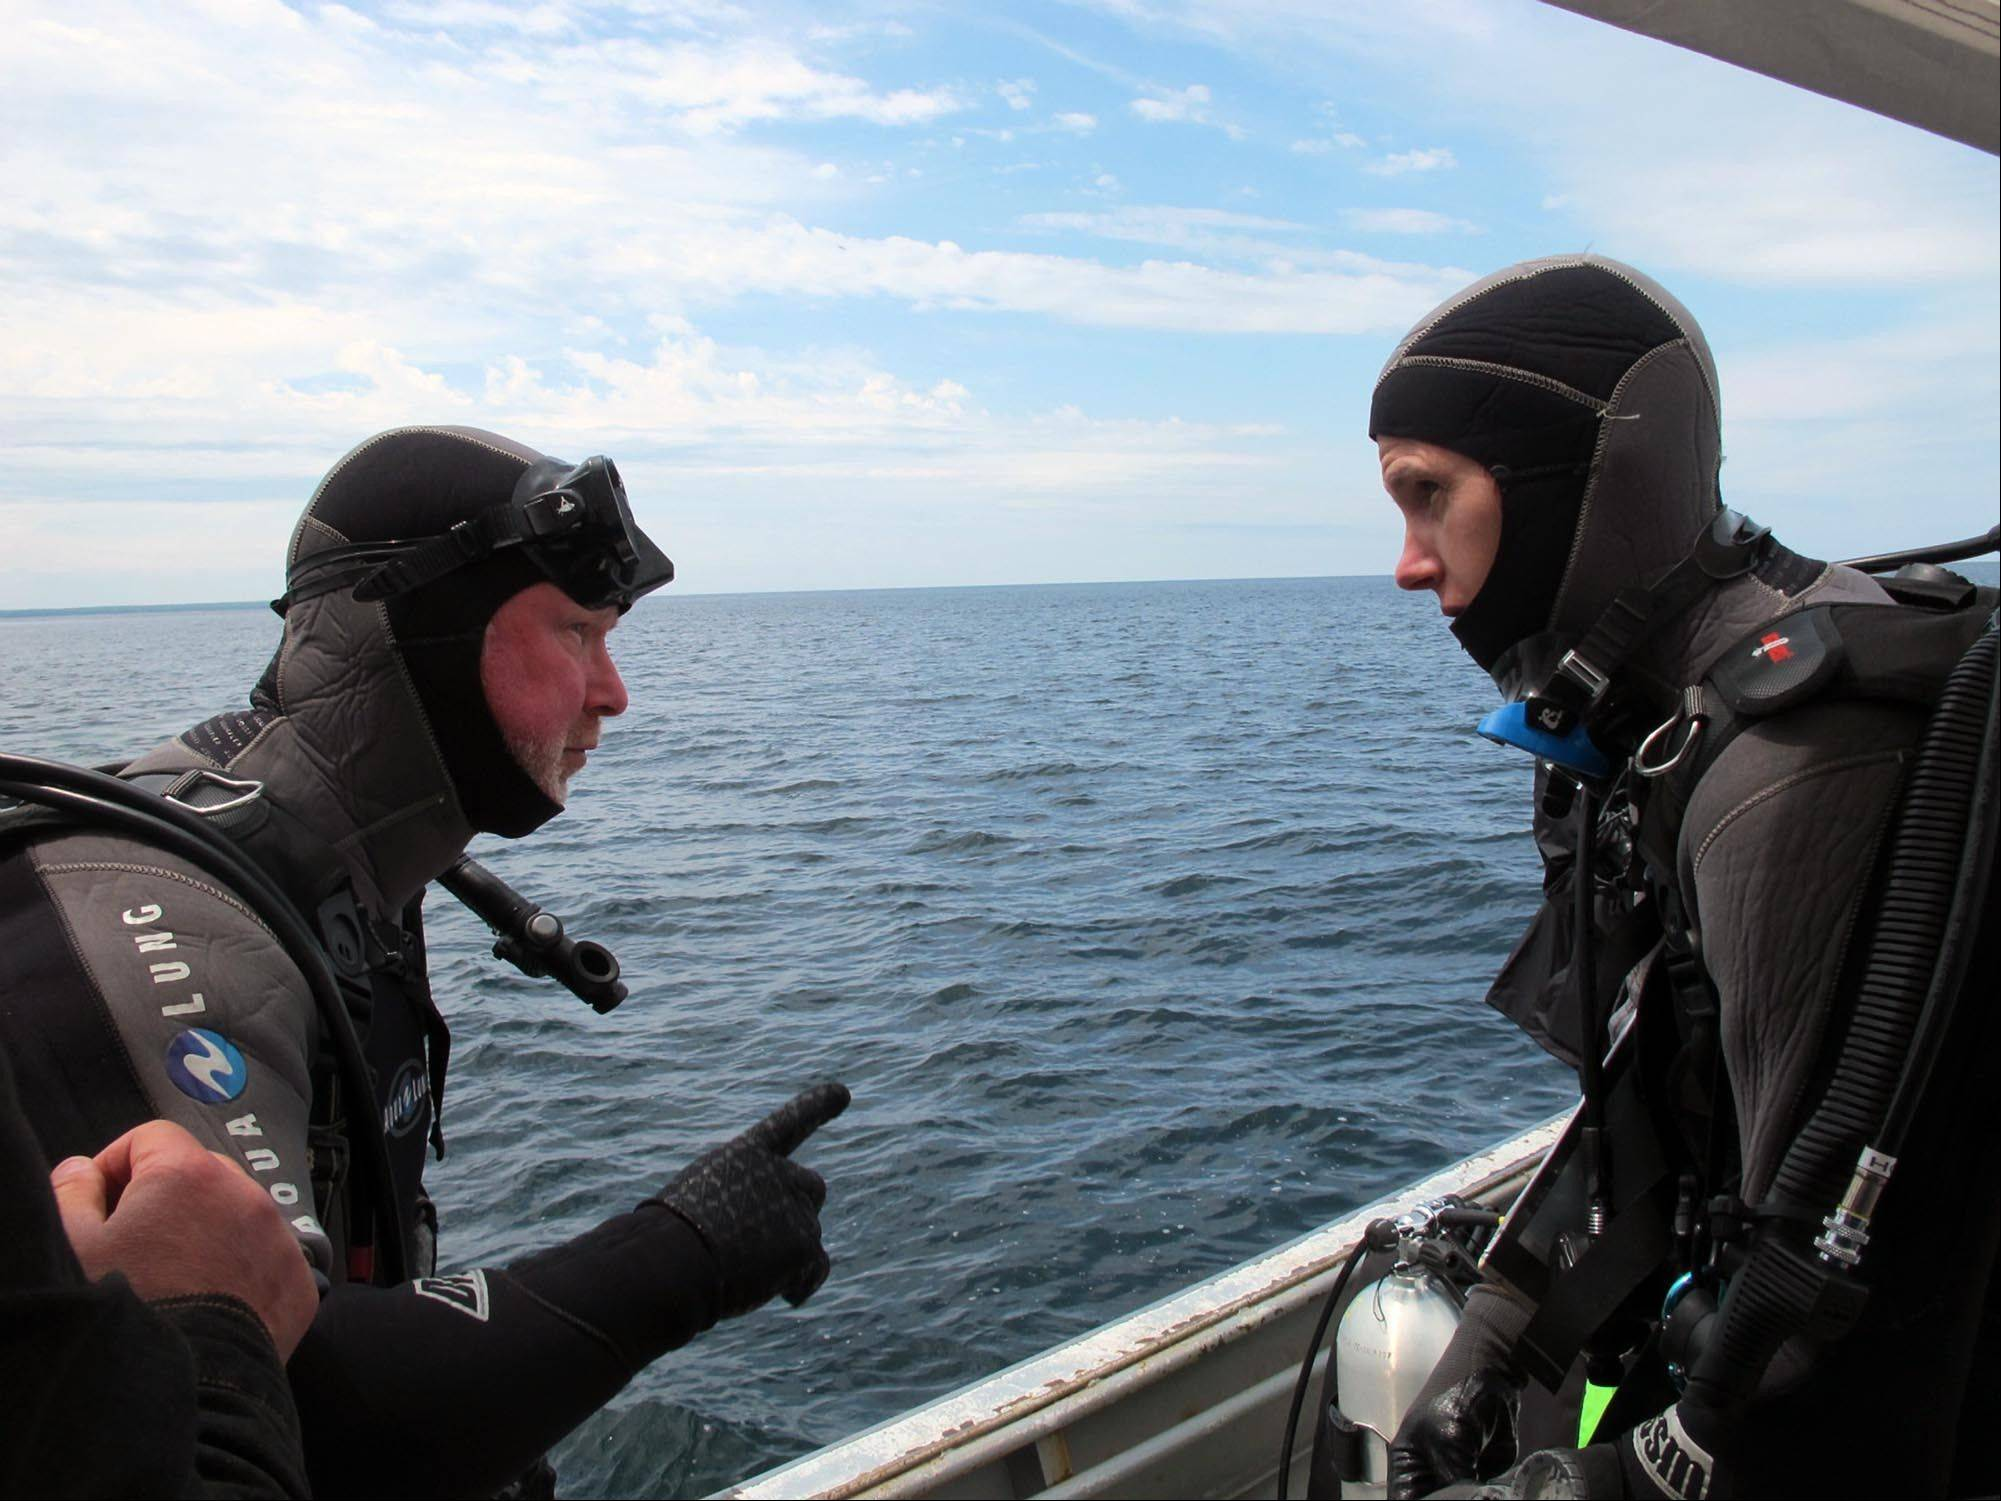 Michel L�Hour, left, director of France�s Department of Underwater Archaeological Research, talks with colleague Olivia Hulot before diving to the site of what may be the fabled Griffin shipwreck Saturday in northern Lake Michigan.